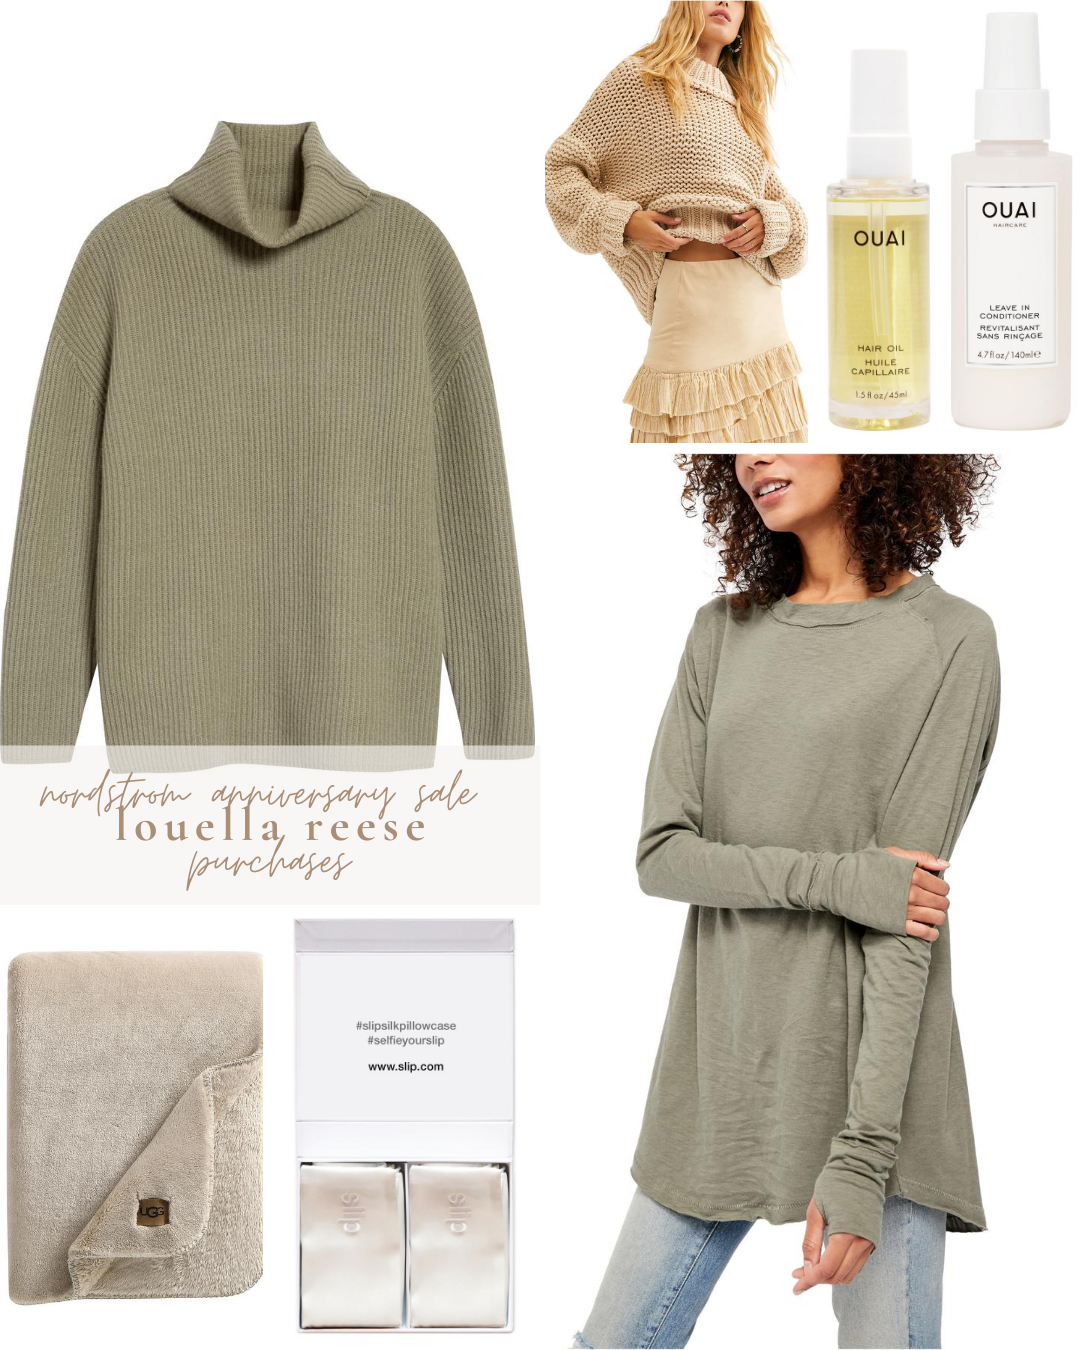 2020 Nordstrom Anniversary Sale Purchases: What I Actually Bought from the Sale   Louella Reese